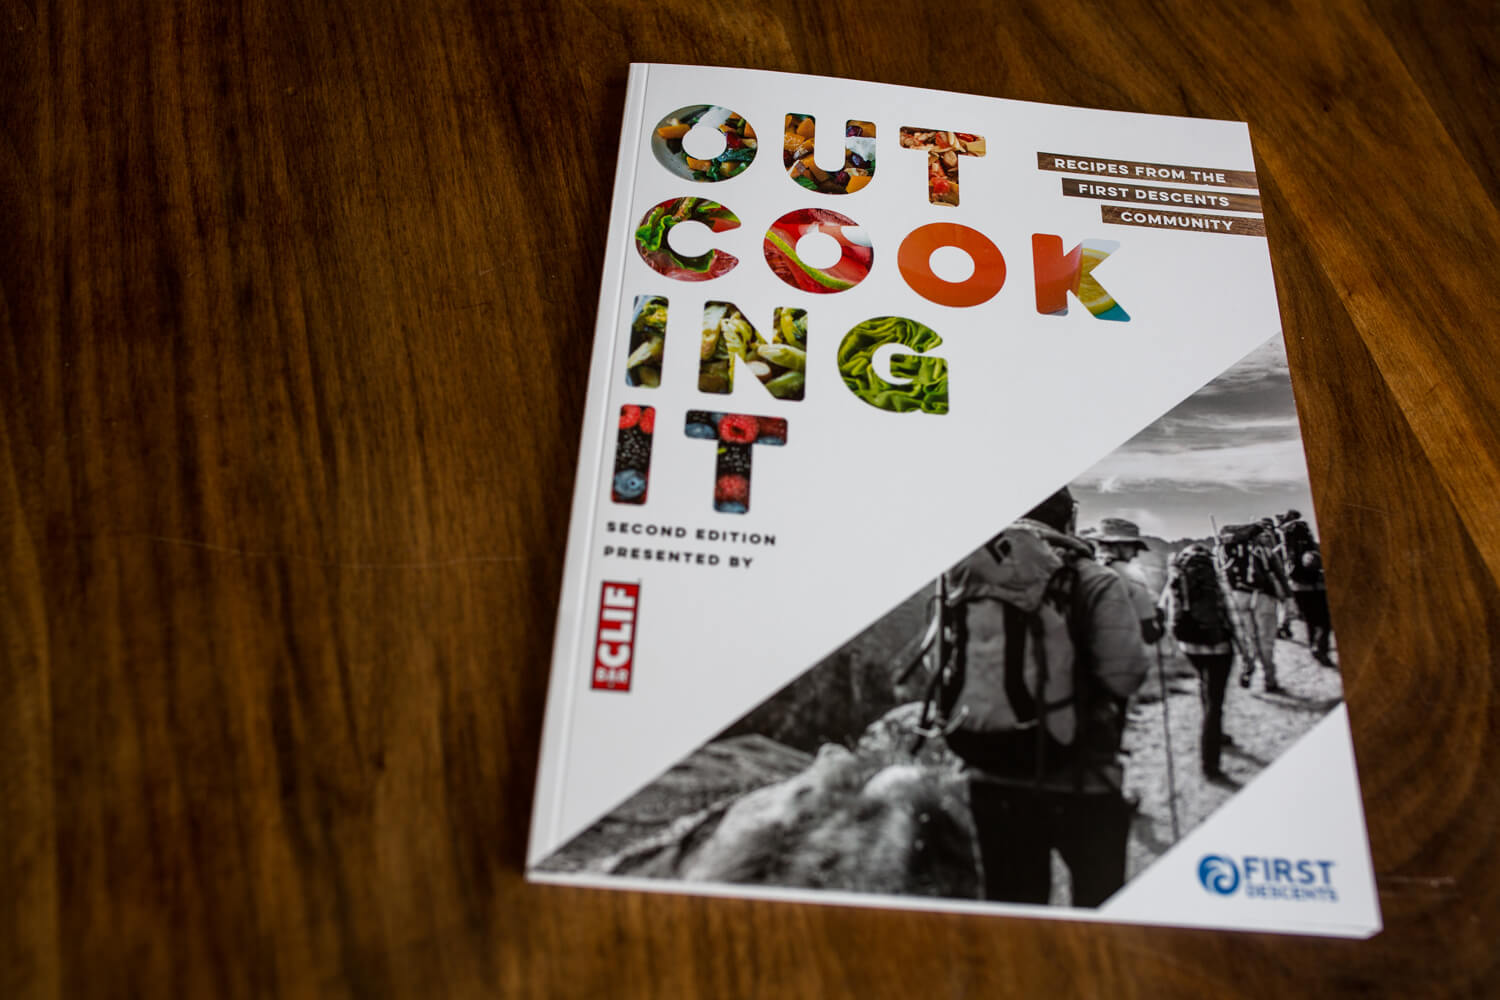 Dutch oven and cast iron cooking 2nd edition | rei co-op.